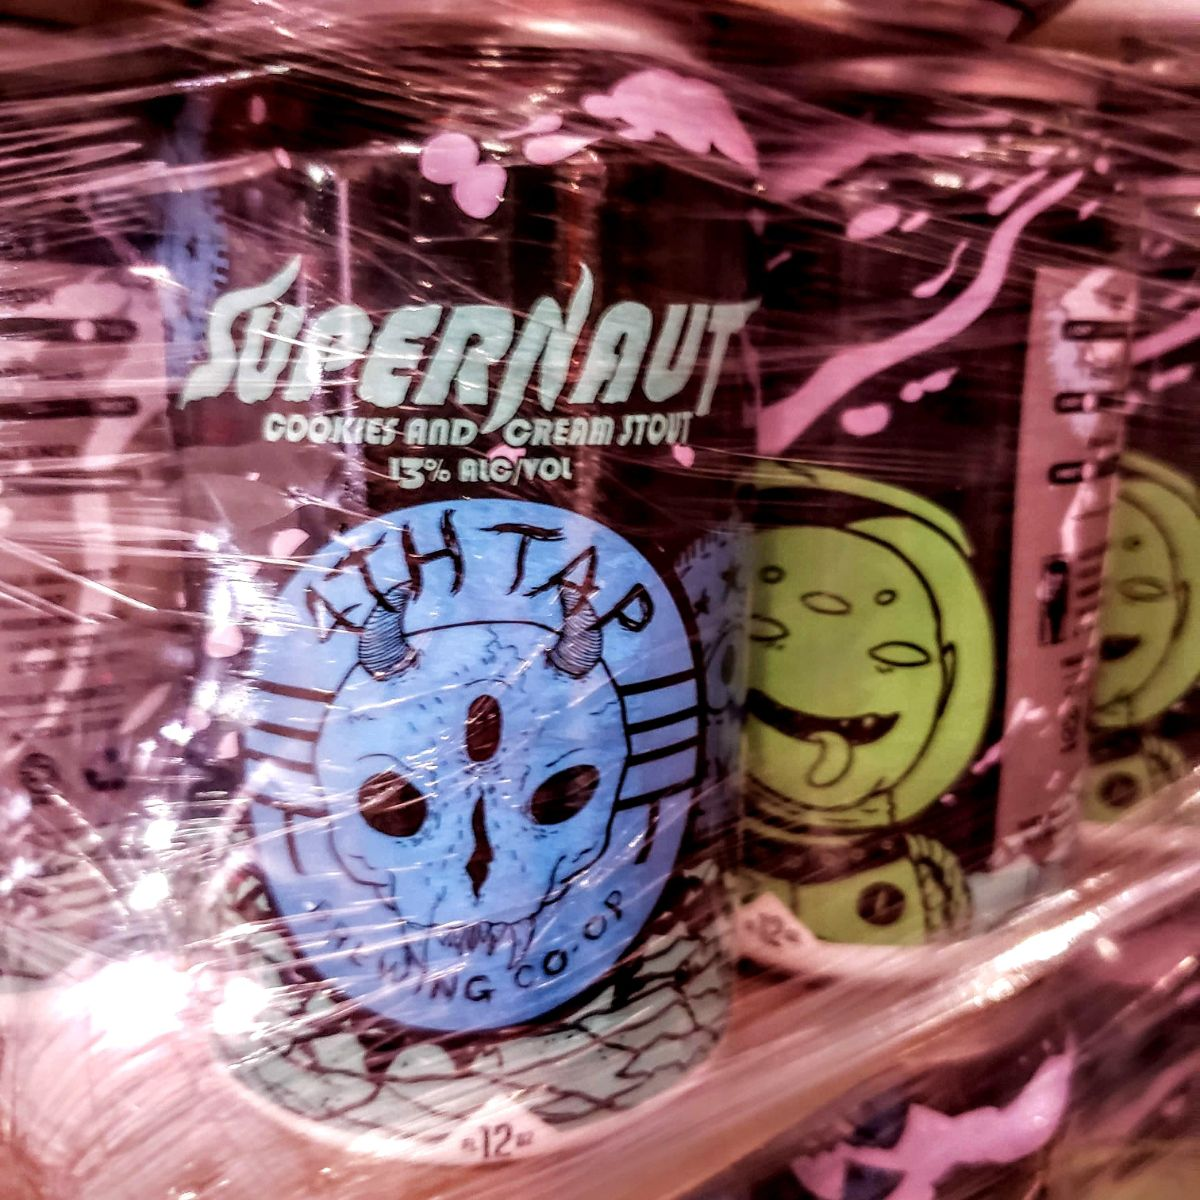 Supernaut: Cookies-N-Cream - Look, we've really nailed how to rapidly develop and release small batches in cans so we're leaning into it hard. As I write this (Thursday) we are canning two new releases, going out tomorrow (Friday, the day after Thursday). First down the line is our first variation on Supernaut, the Cookies-N-Cream Supernaut. How? Vanilla and buckets of broken, delicious cookies built on the base of our chocolate imperial stout - Supernaut. Weighs in at a solid 13%. Maybe it's the wrong time of year, but we want to drink what we want to drink when we want to drink it. Seasonality be damned.